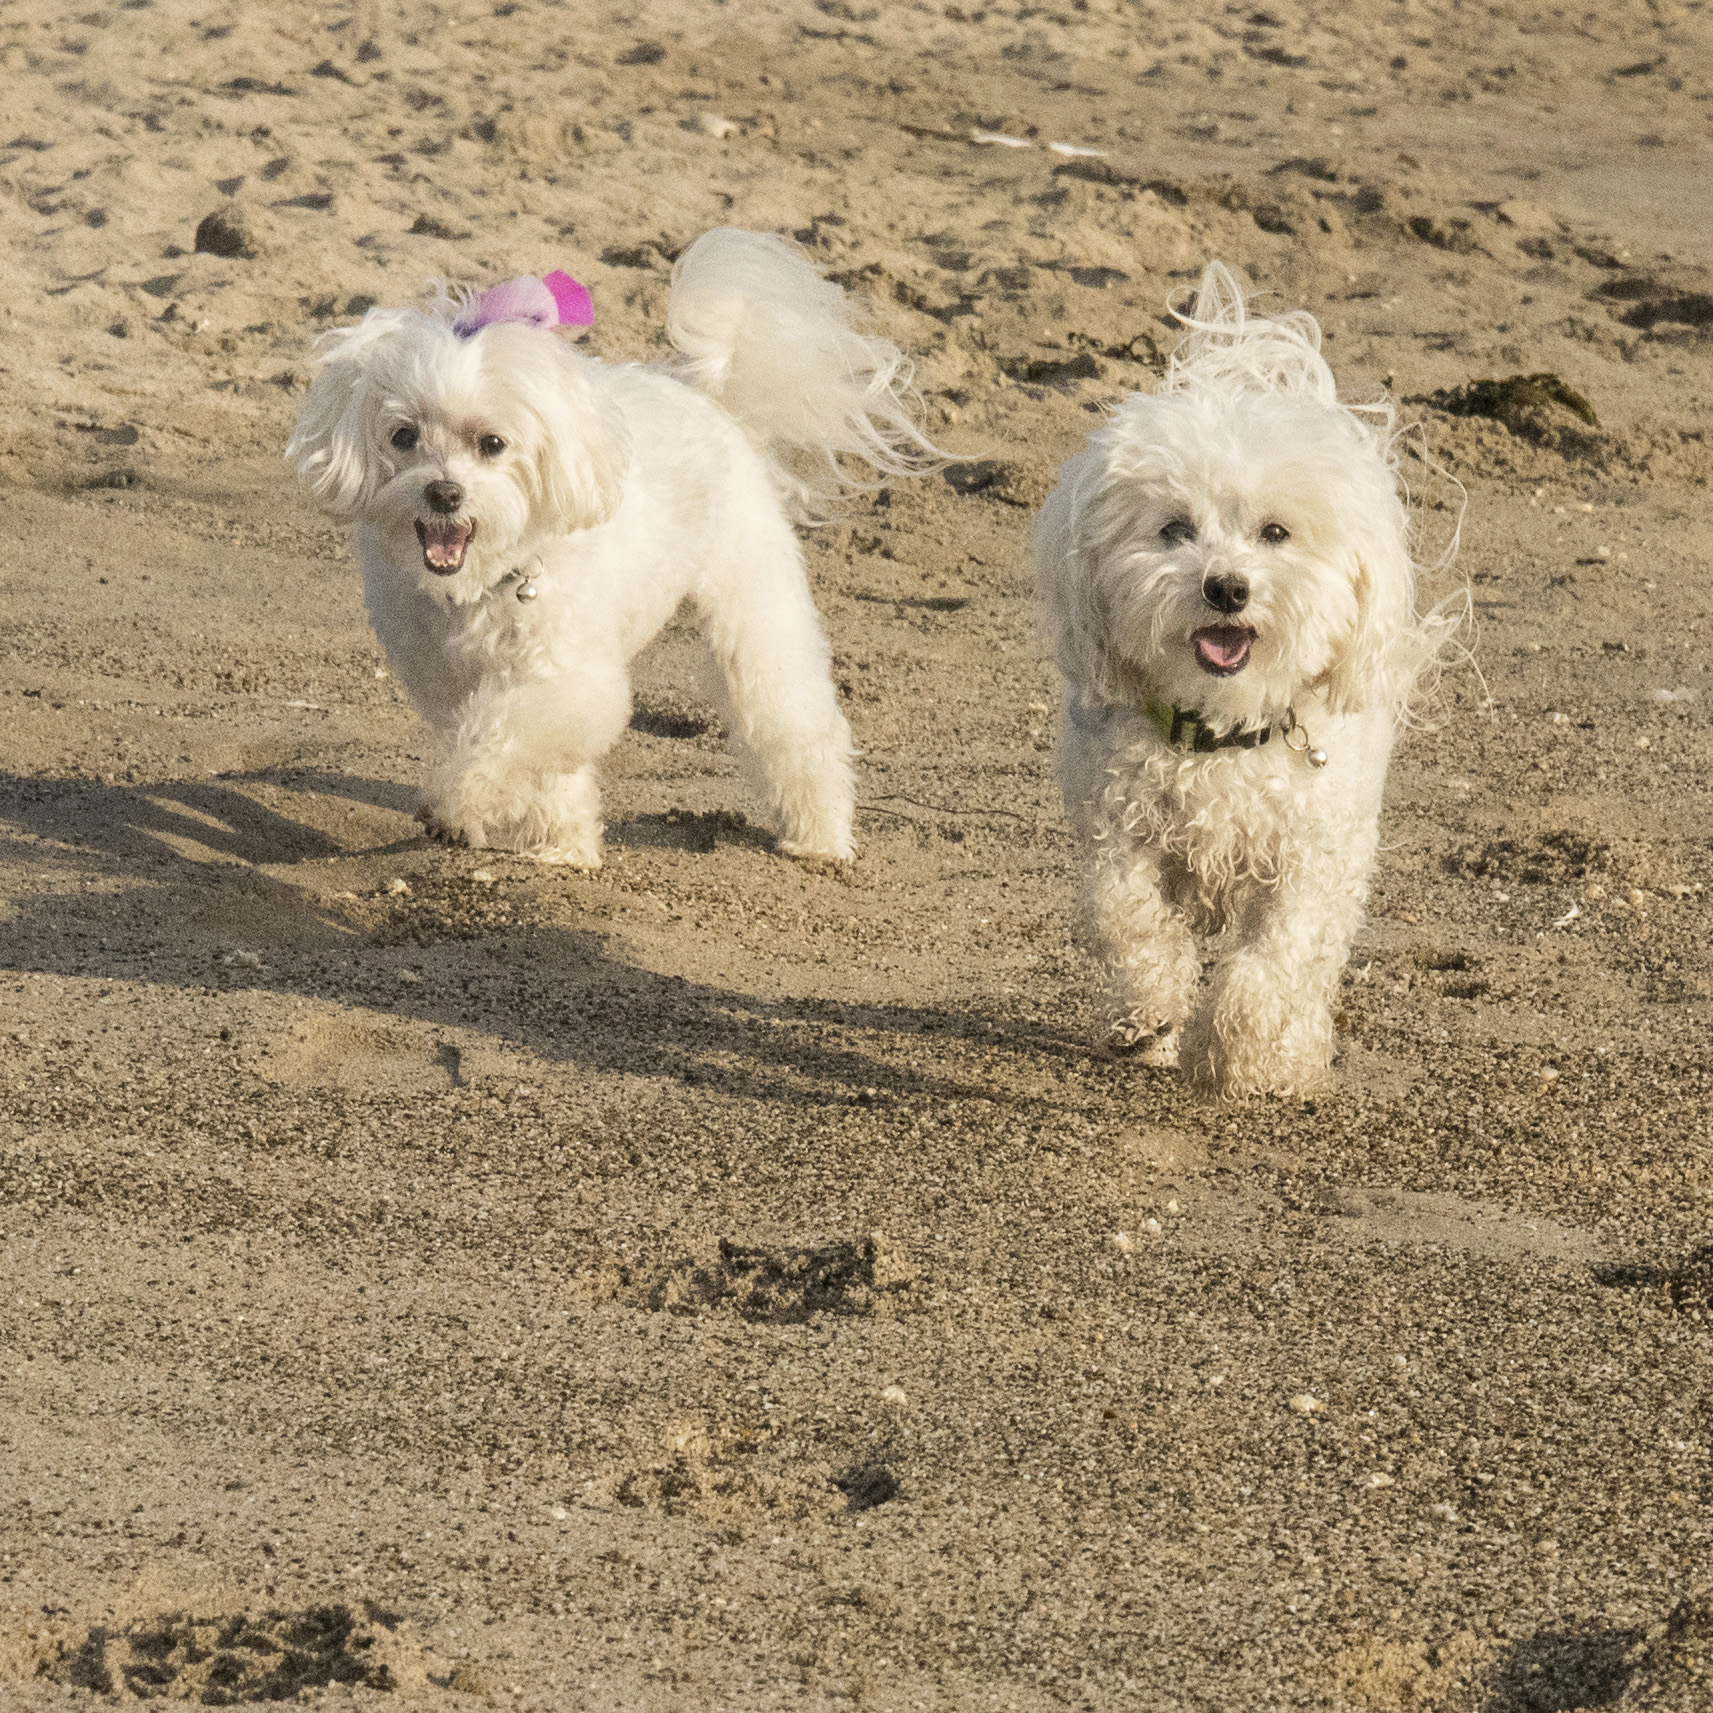 Pebbles may not want to be down by the water, but that doesn't mean she won't have fun on the beach with her brother!